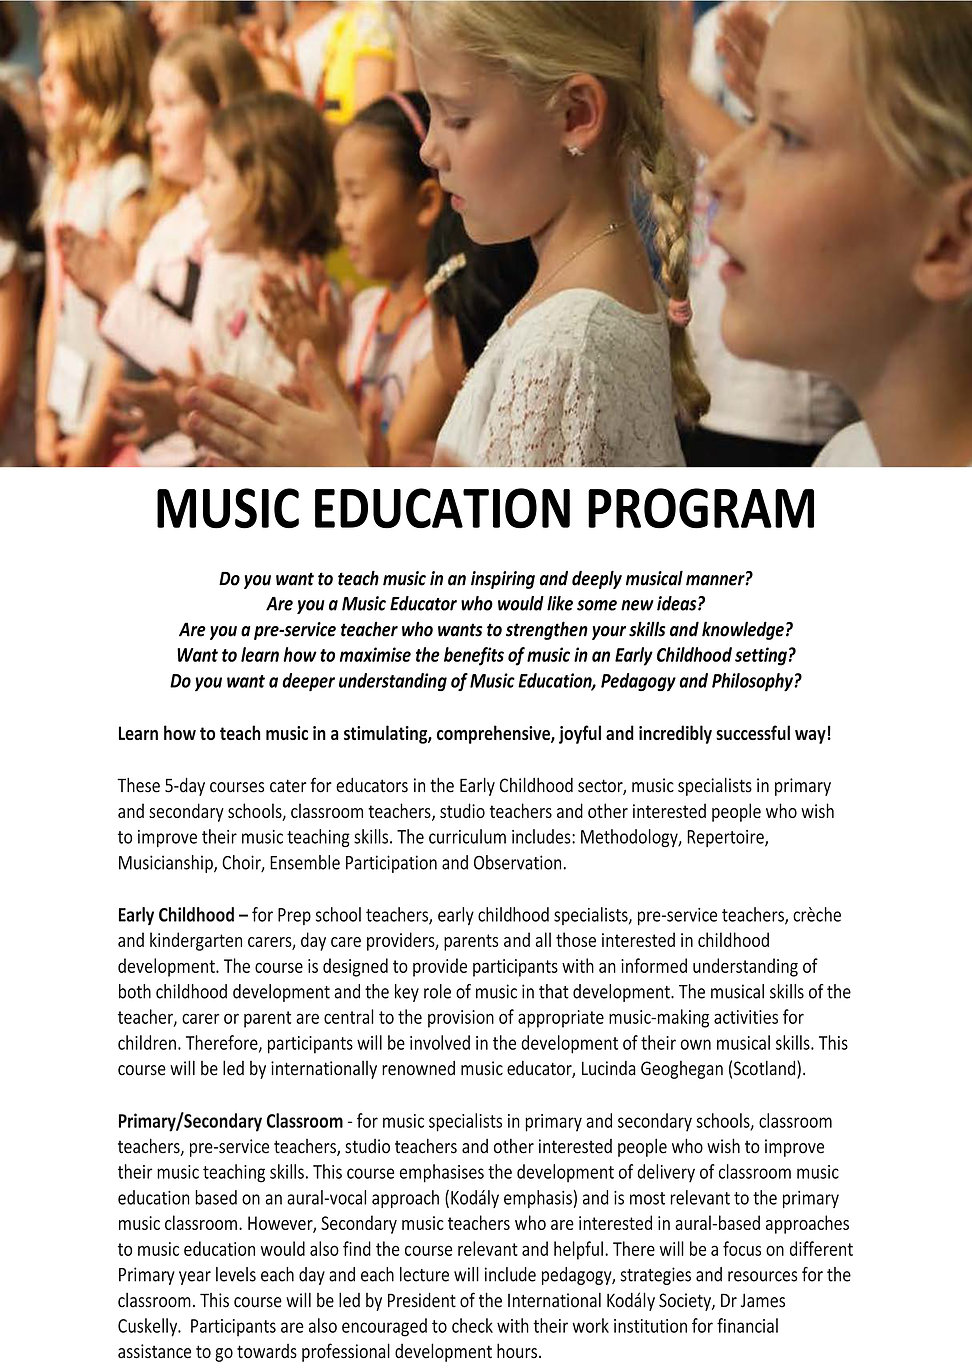 beat of the bush winter music program tenterfield 8-12th july 2019 cuskelly college of music